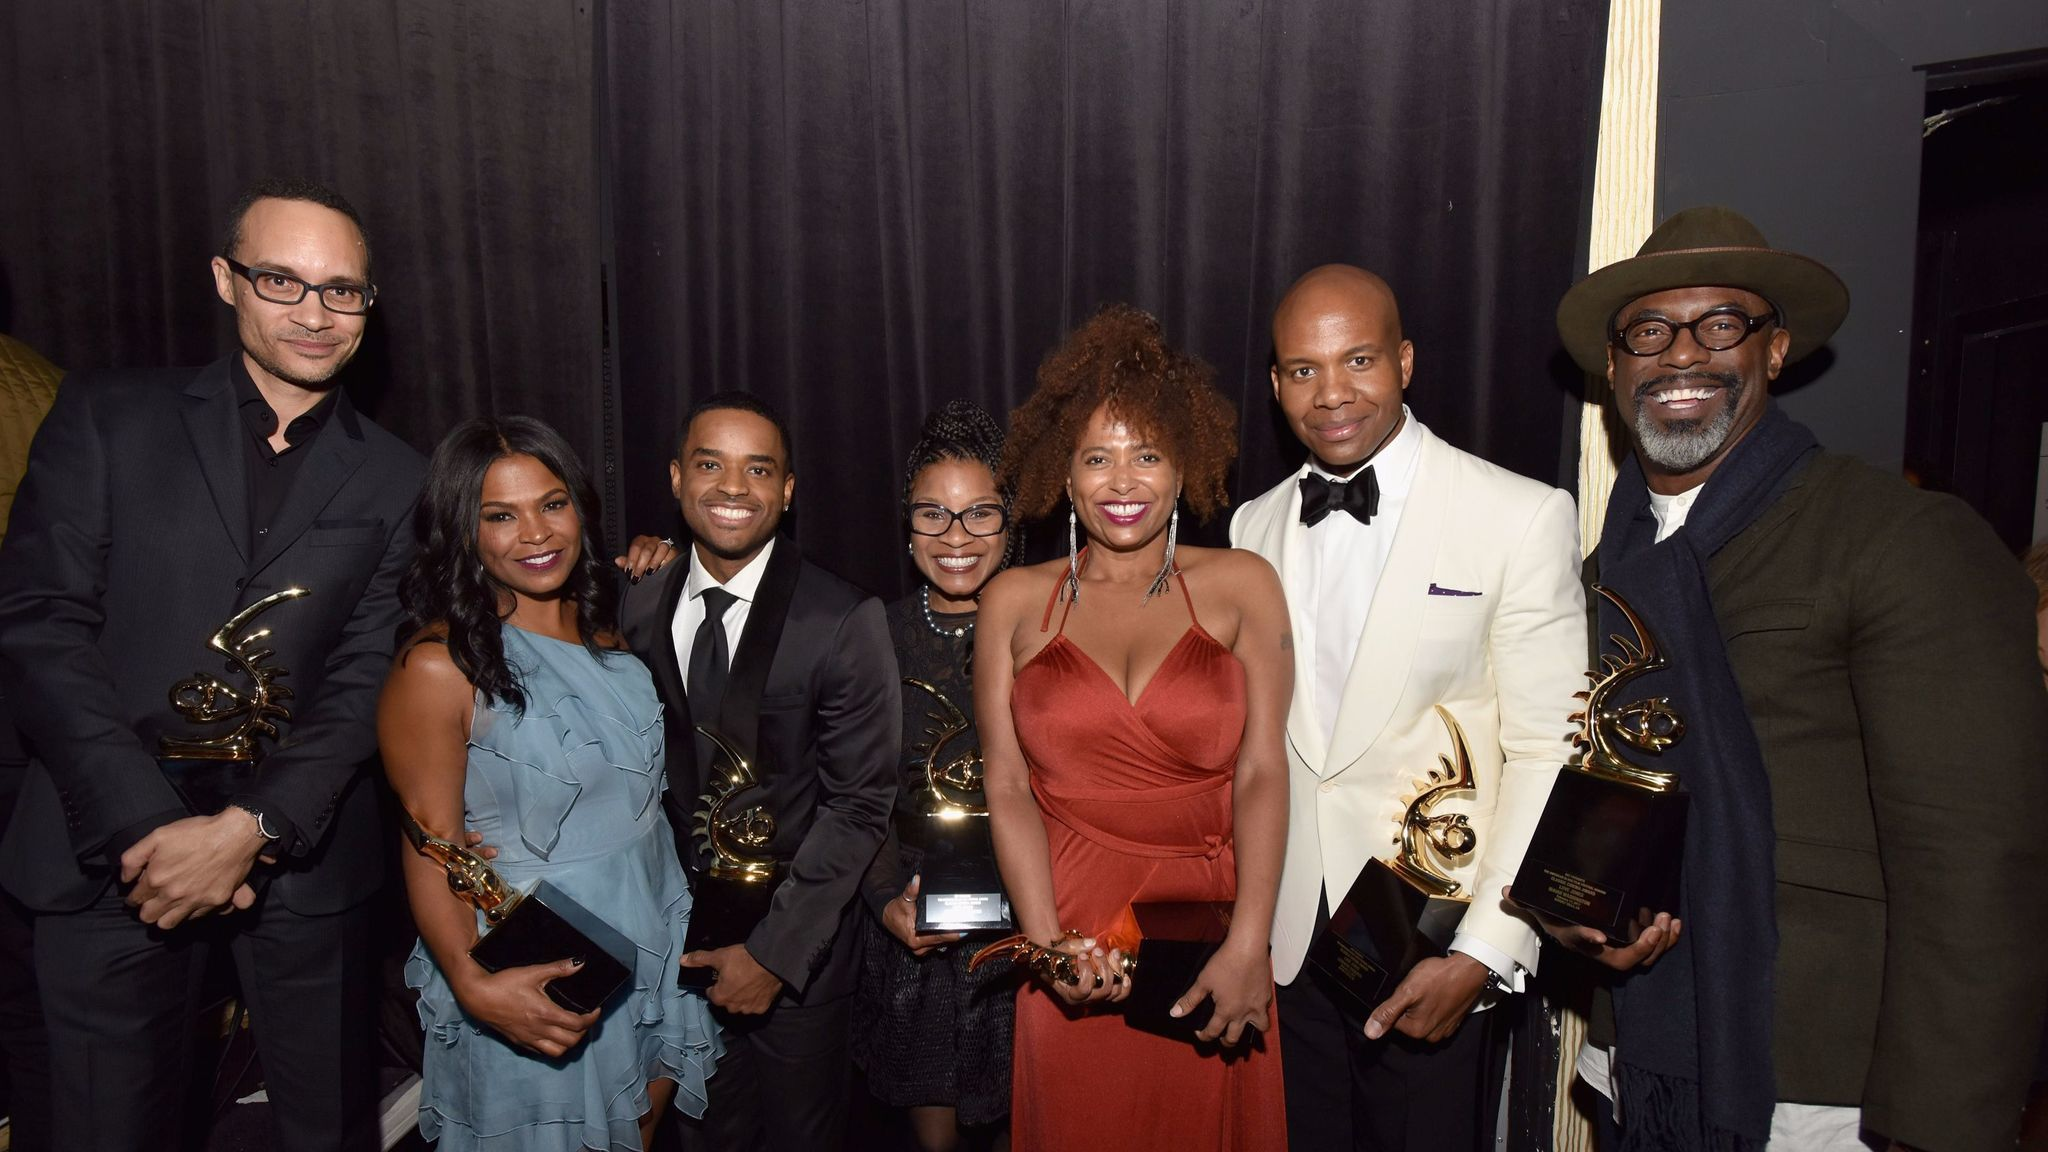 Theodore Witcher, Nia Long, Larenz Tate, Bernadette Speakes, Lisa Nicole Carson, Leonard Roberts and Isaiah Washington at the American Black Film Festival Honors.